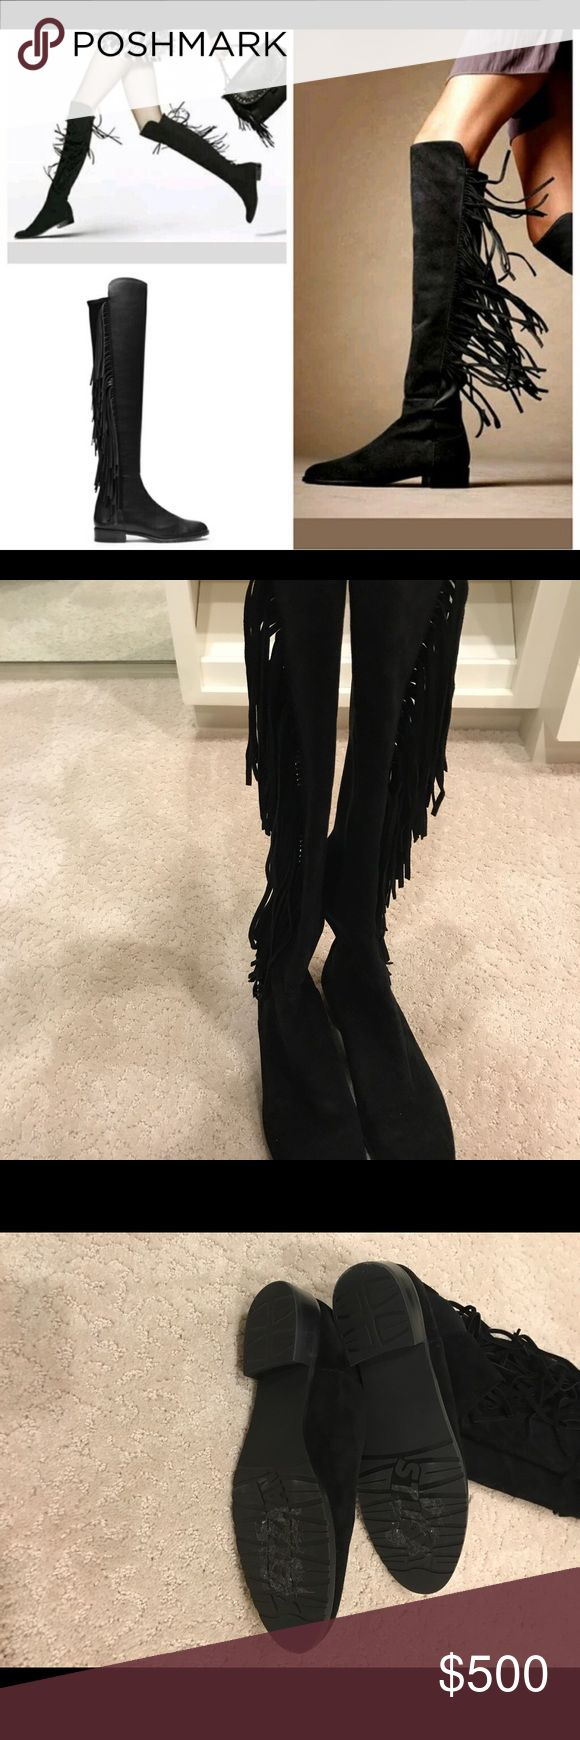 Stuart Weitzman Mane 5050 boot 8M Brand new without box Stuart Weitzman Shoes Over the Knee Boots